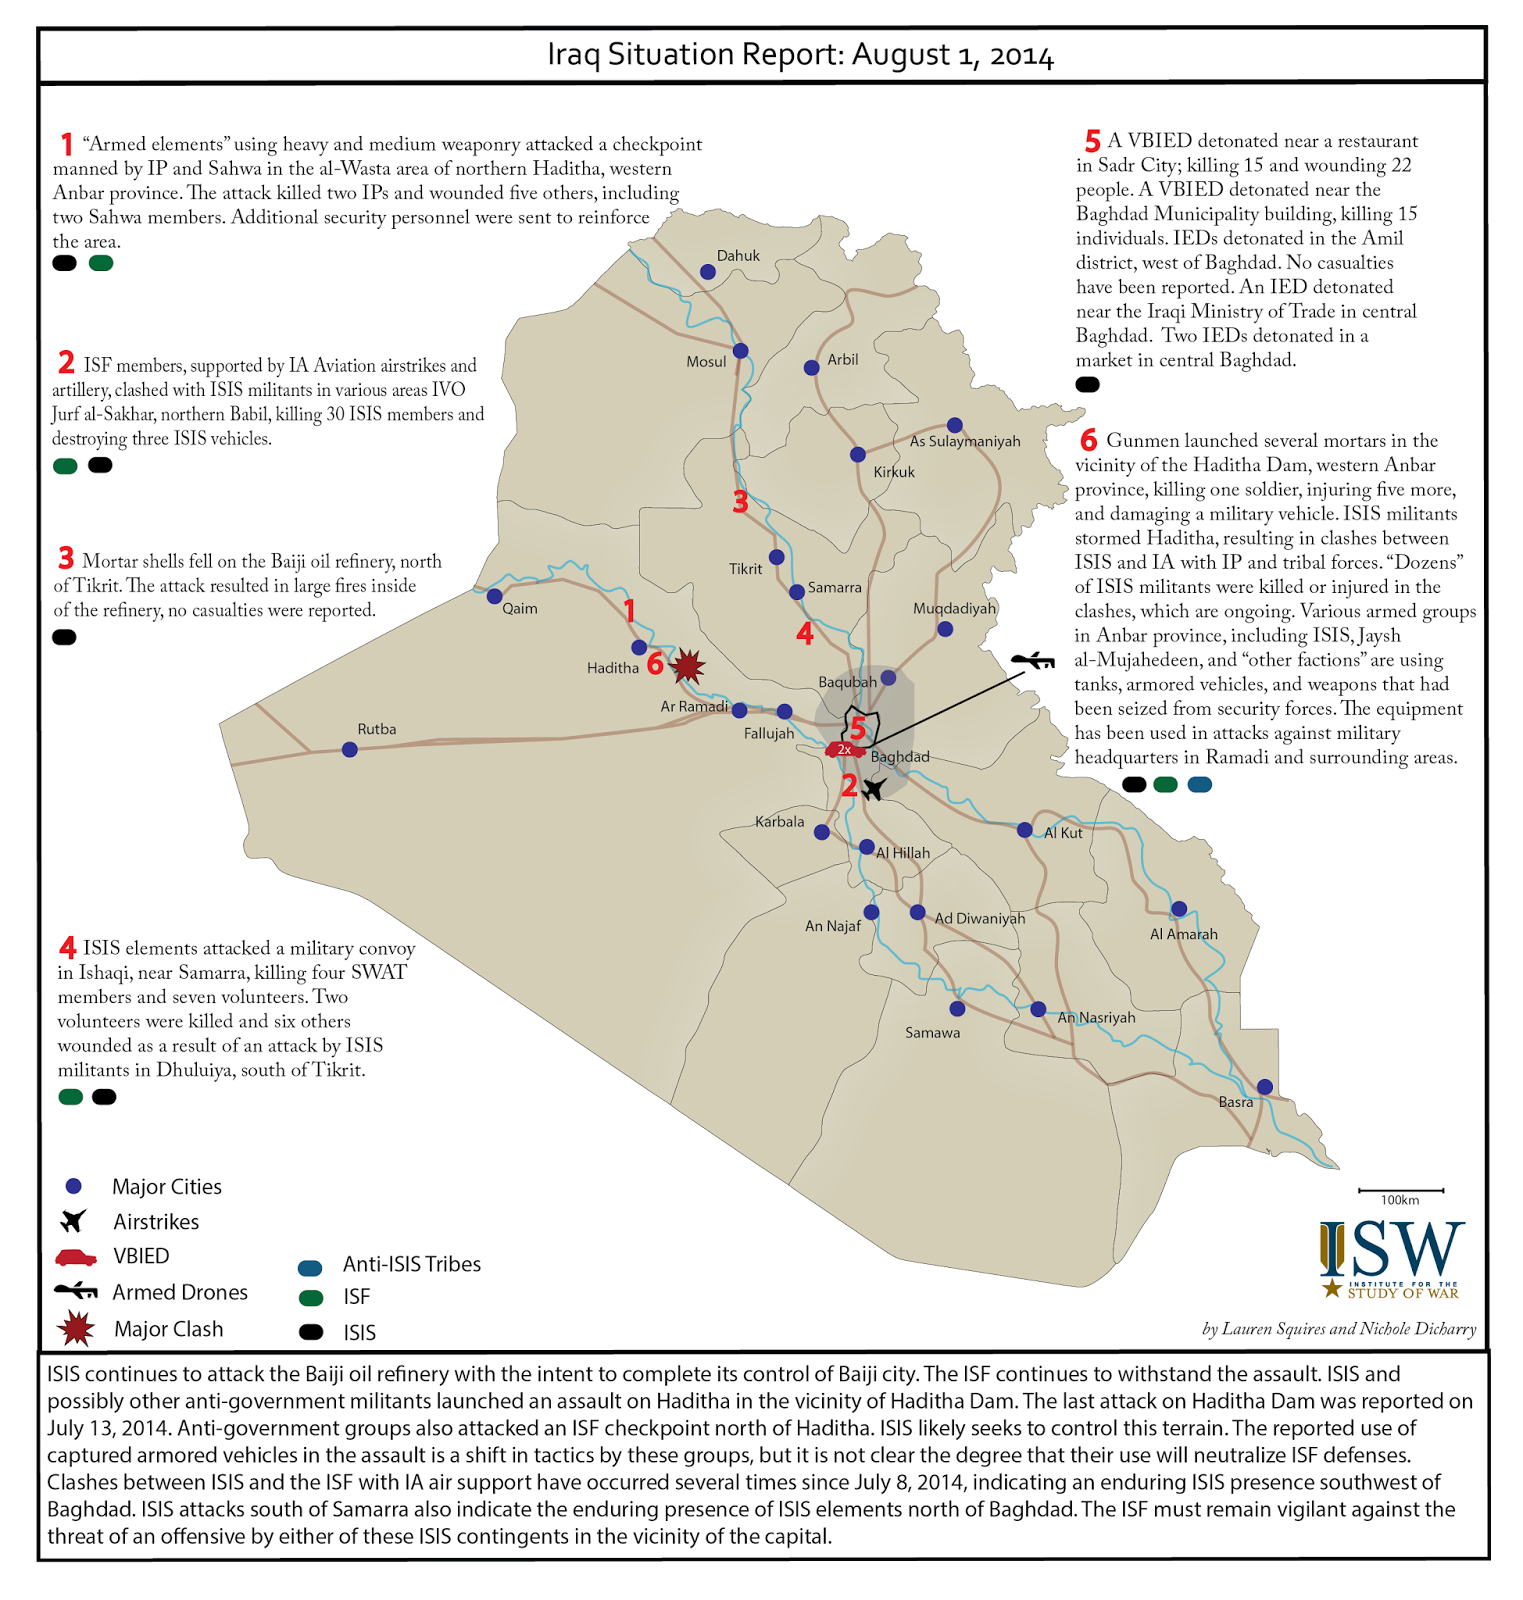 Map: Iraq situation report as of August 1, 2014 from the Institute